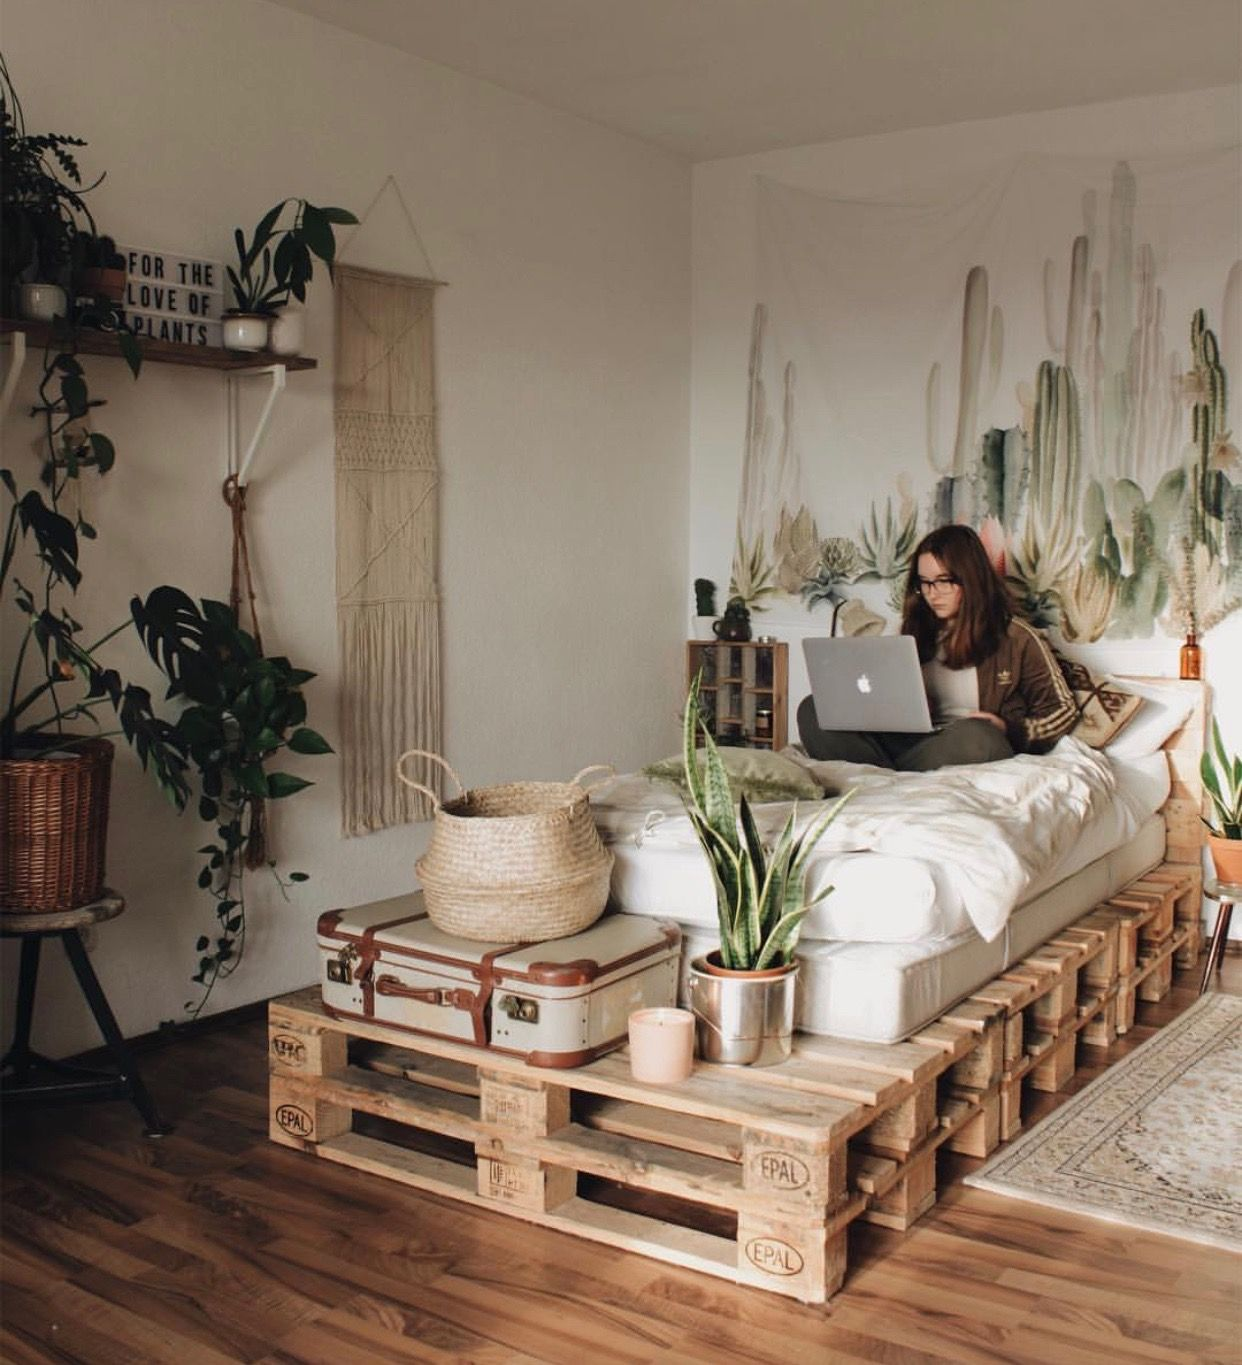 A wood pallet bed has been on the todo list for too long now